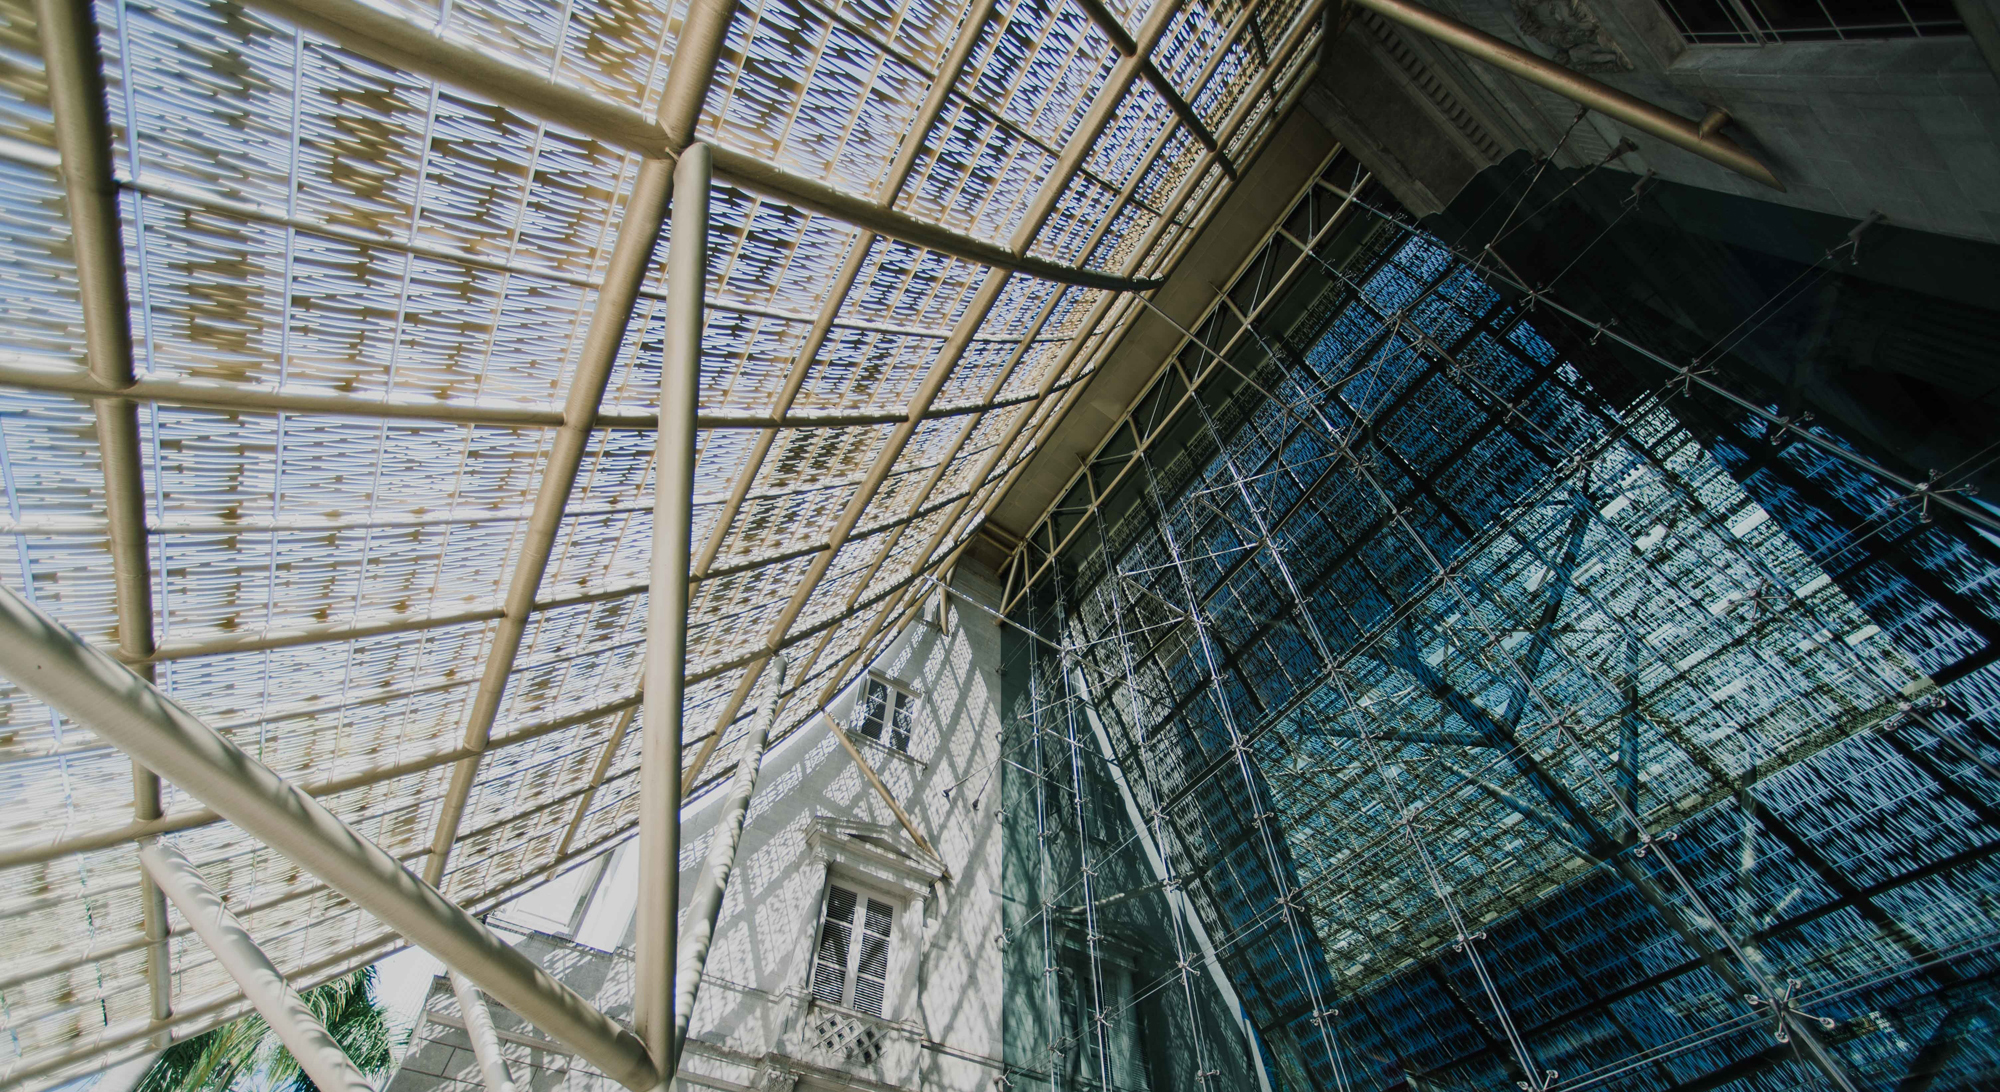 glass ceiling image by chuttersnap